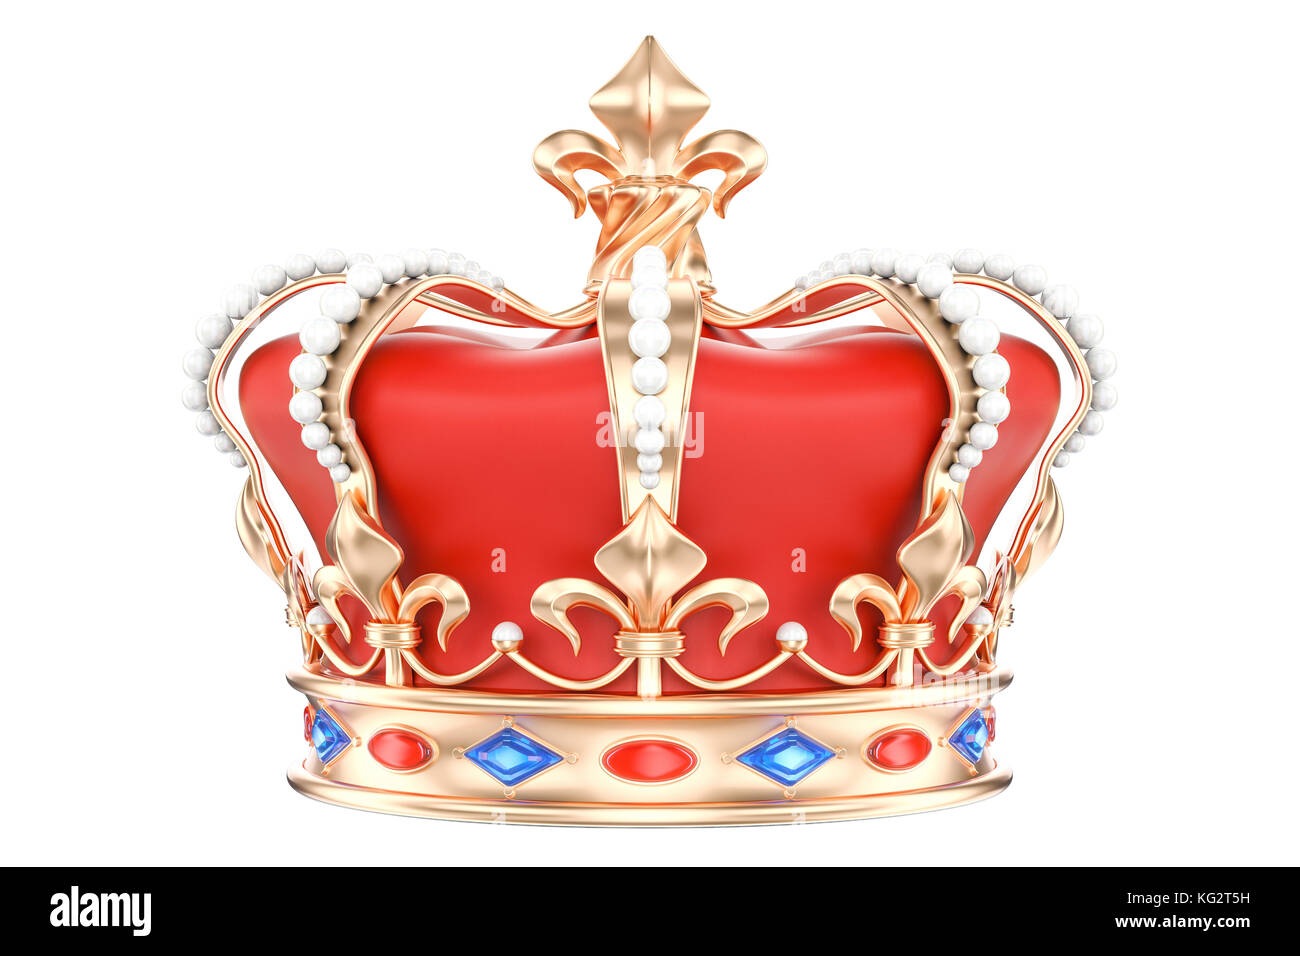 Golden Crown, 3D rendering isolated on white background - Stock Image